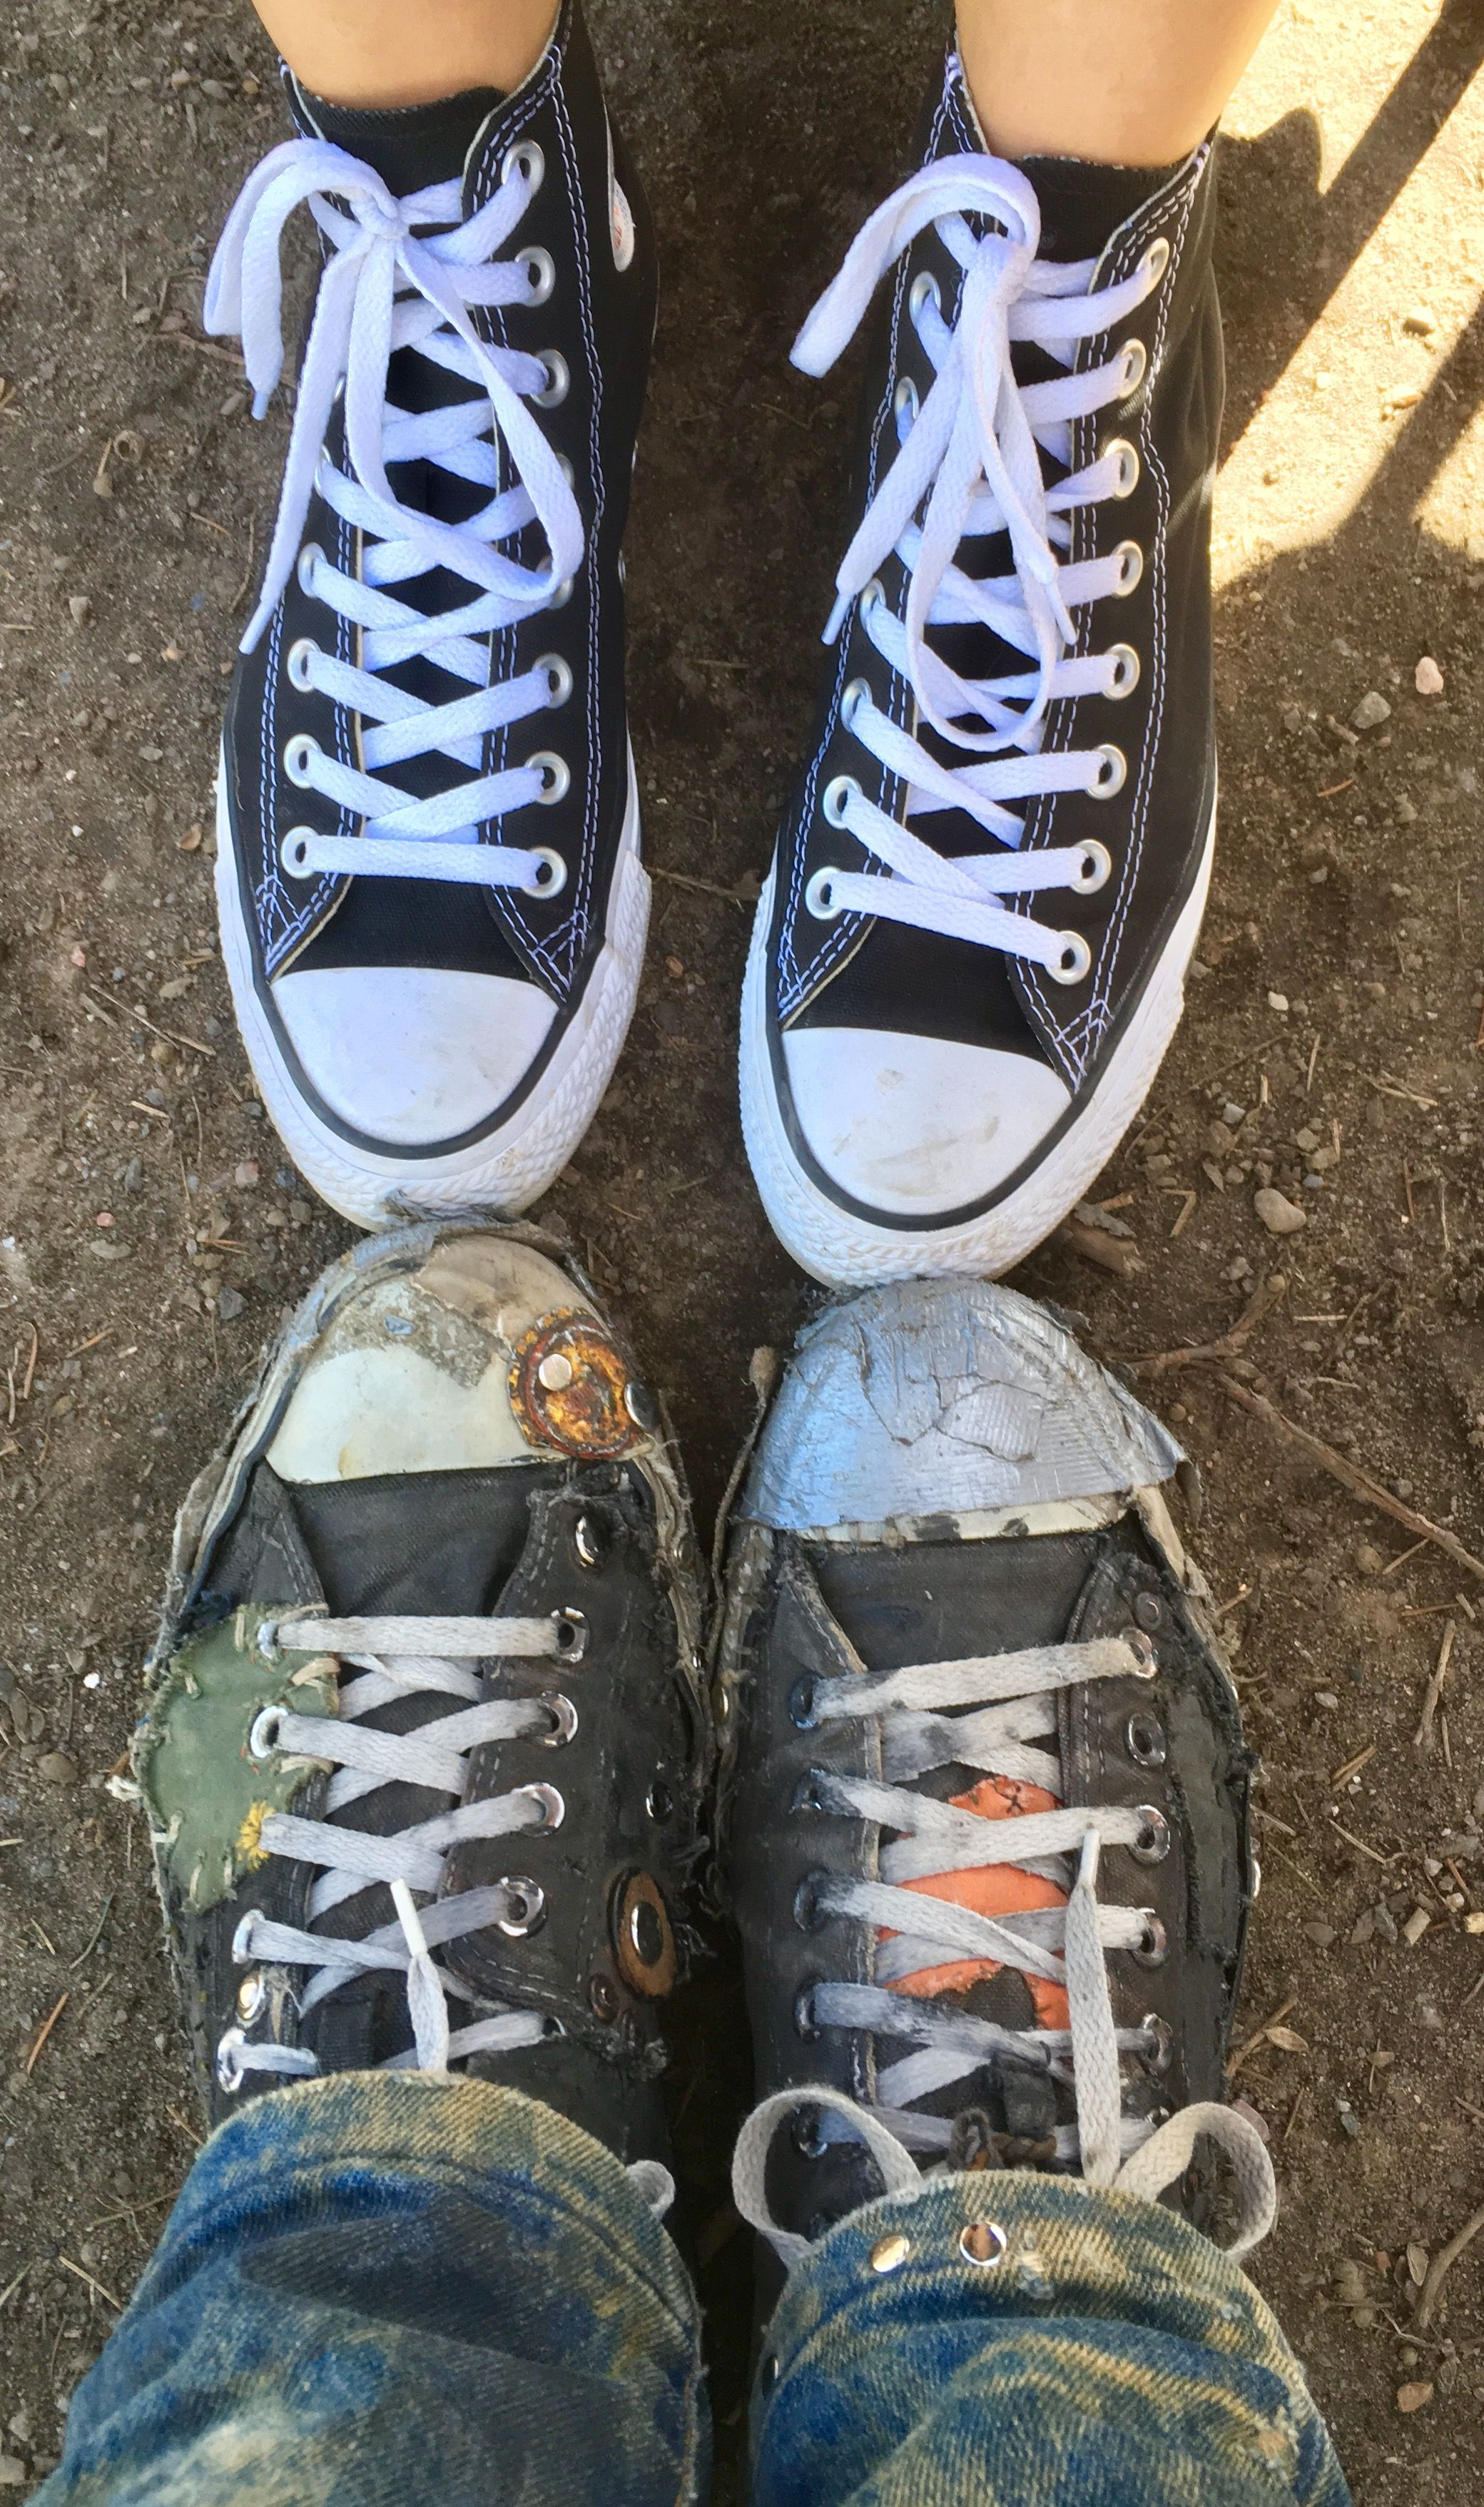 83ed1f844f42 CONVERSE. ALL STAR. Worn sneakers. fjällräven. Hobo Shoes. patching. repair.  Boro.Now